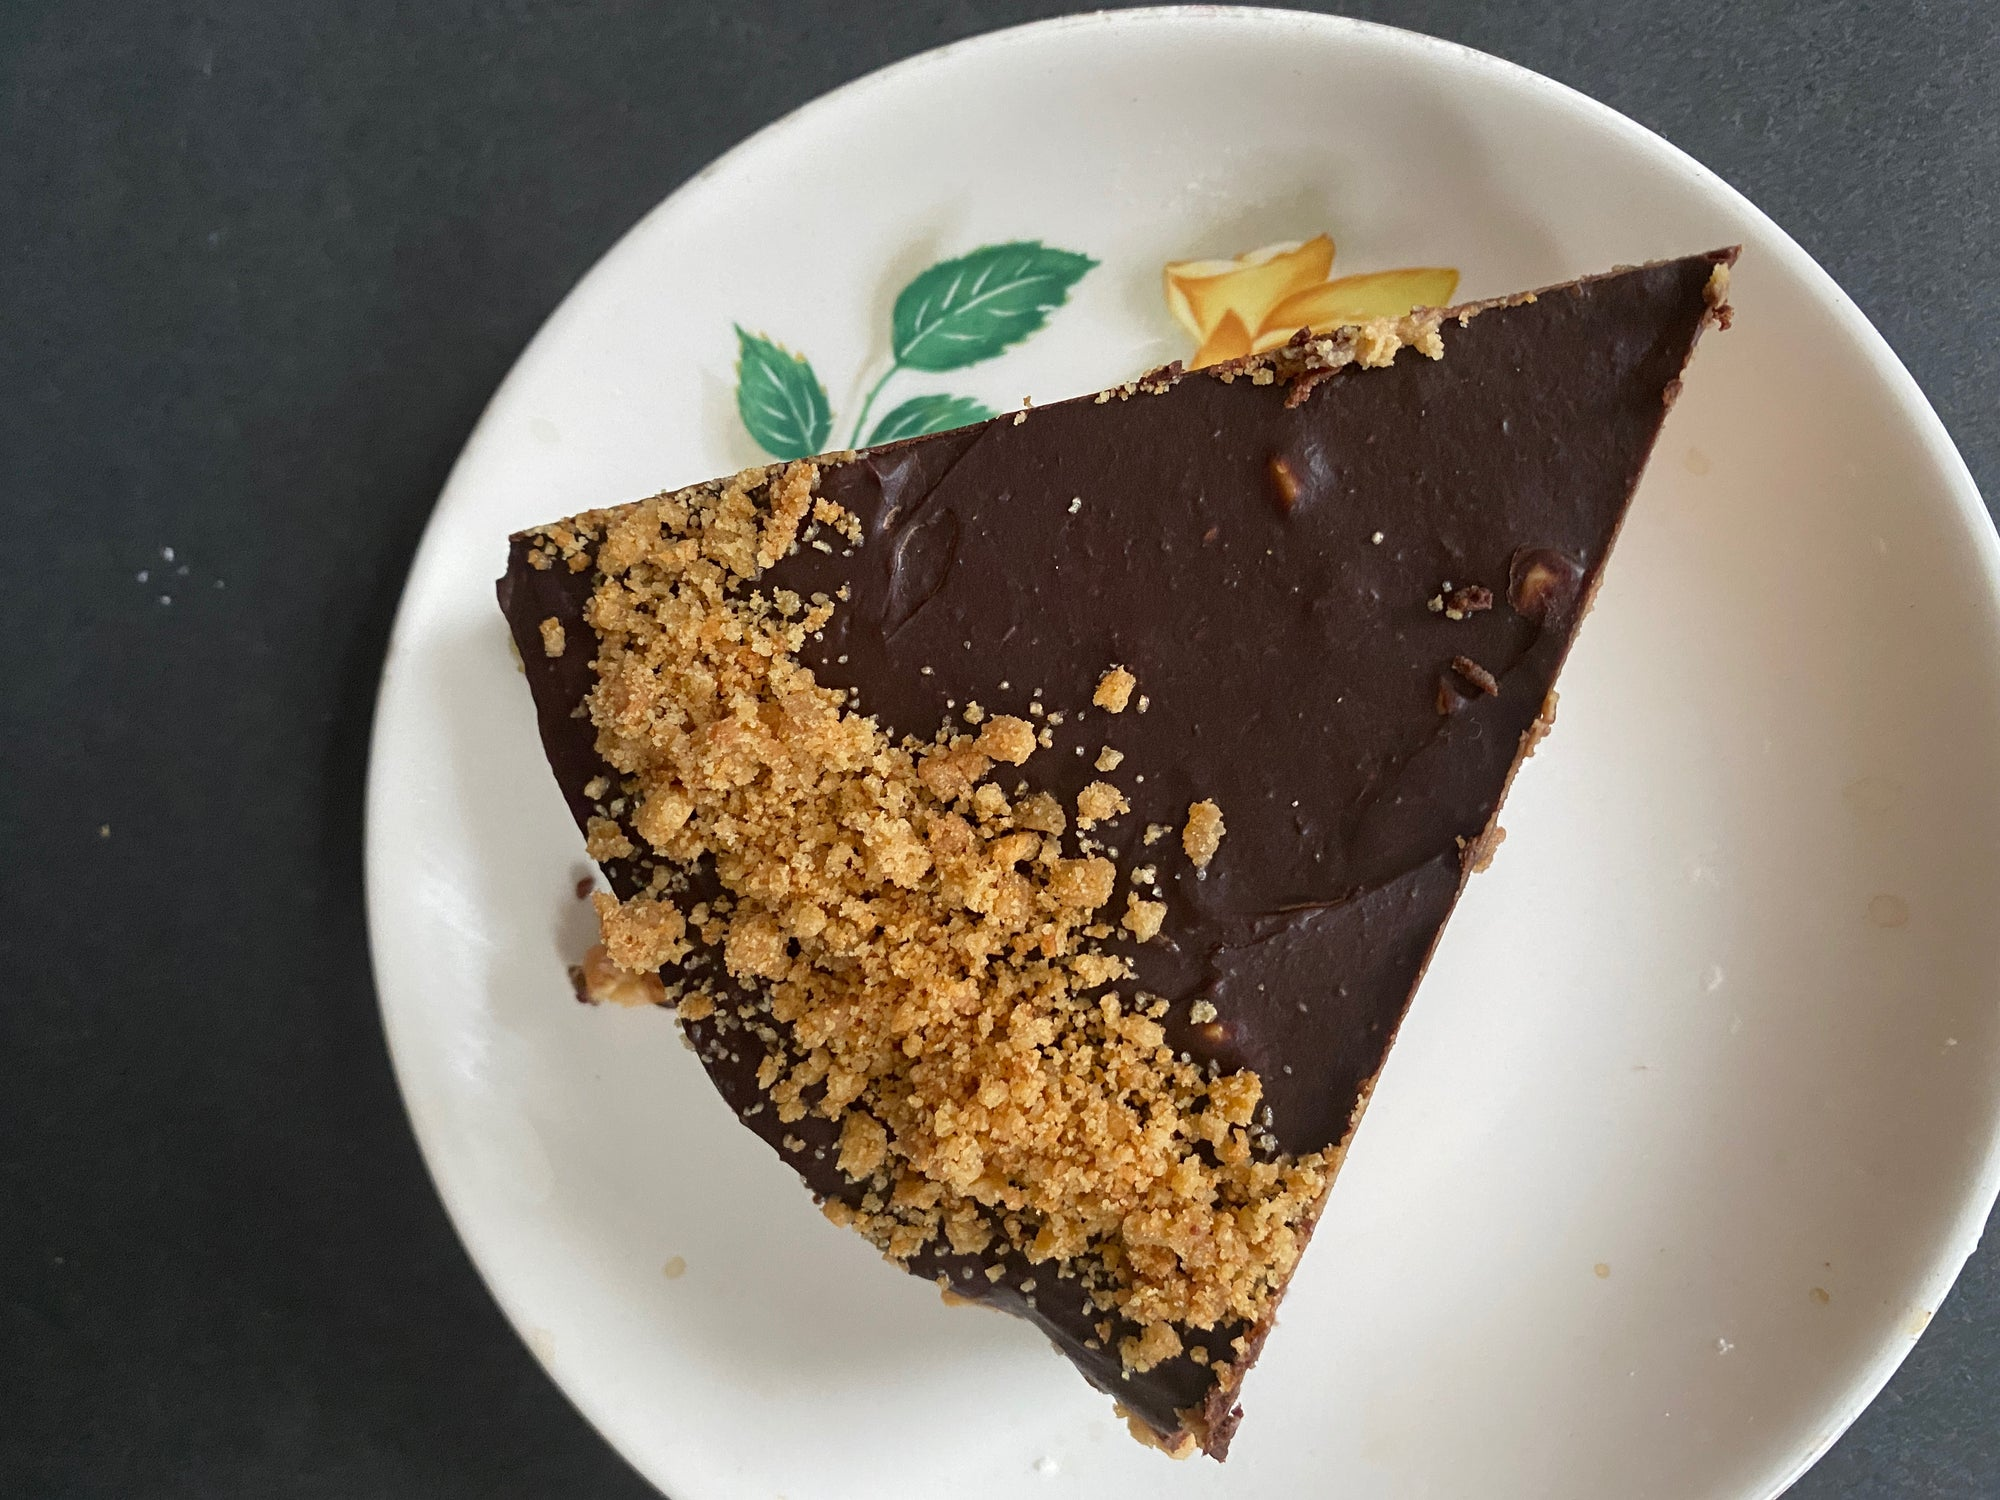 Nunbelievable Recipes: An Indulgent Chocolate Peanut Butter Pie